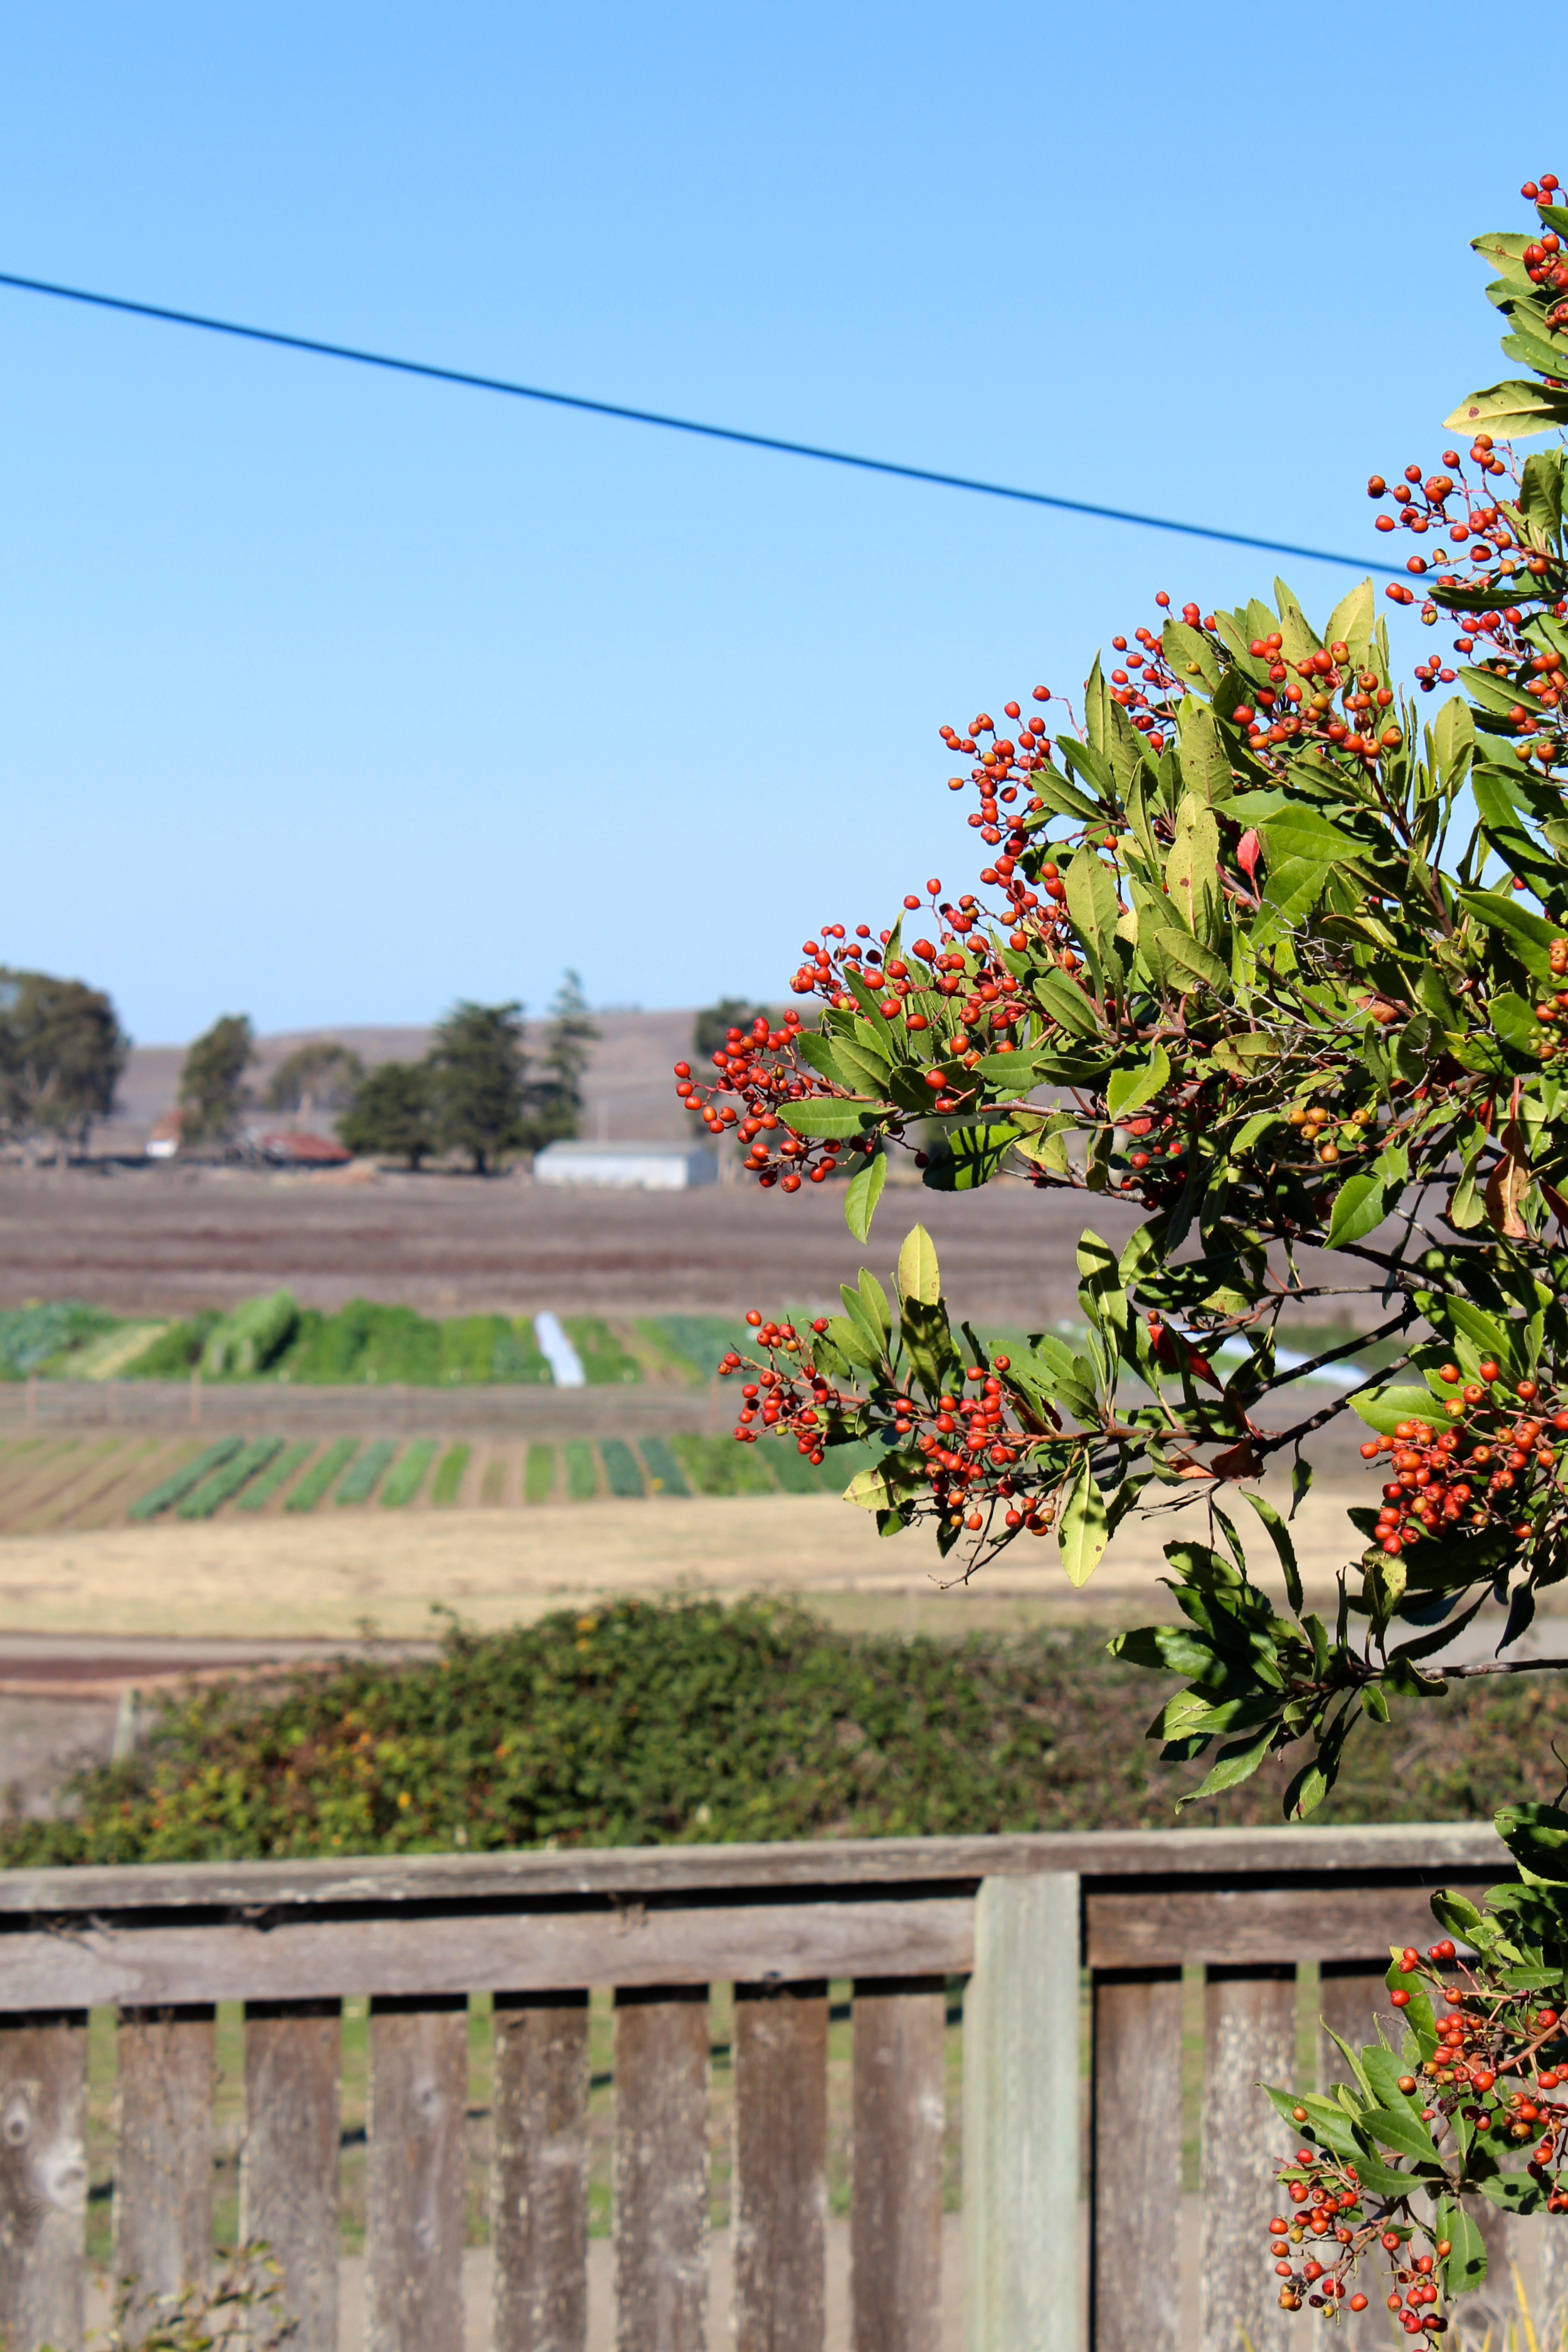 The toyon berries by our house that the birds are loving.